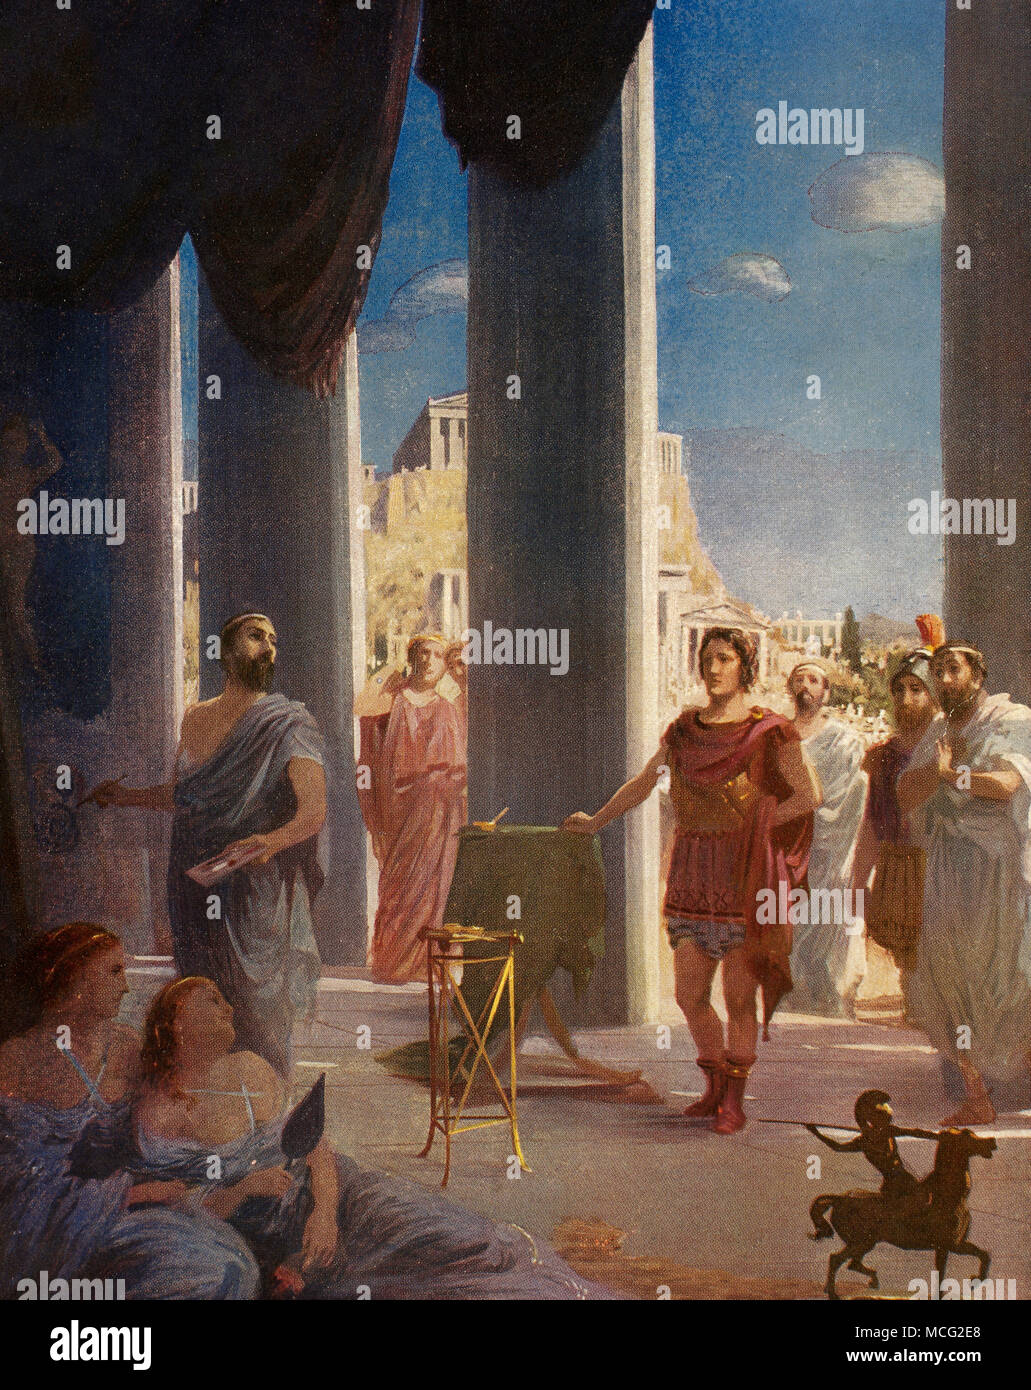 Apelles of Kos (4th century BC). Painter of ancient Greece. Alexander the Great visiting the artist Apelles in his workshop. Color illustration. - Stock Image